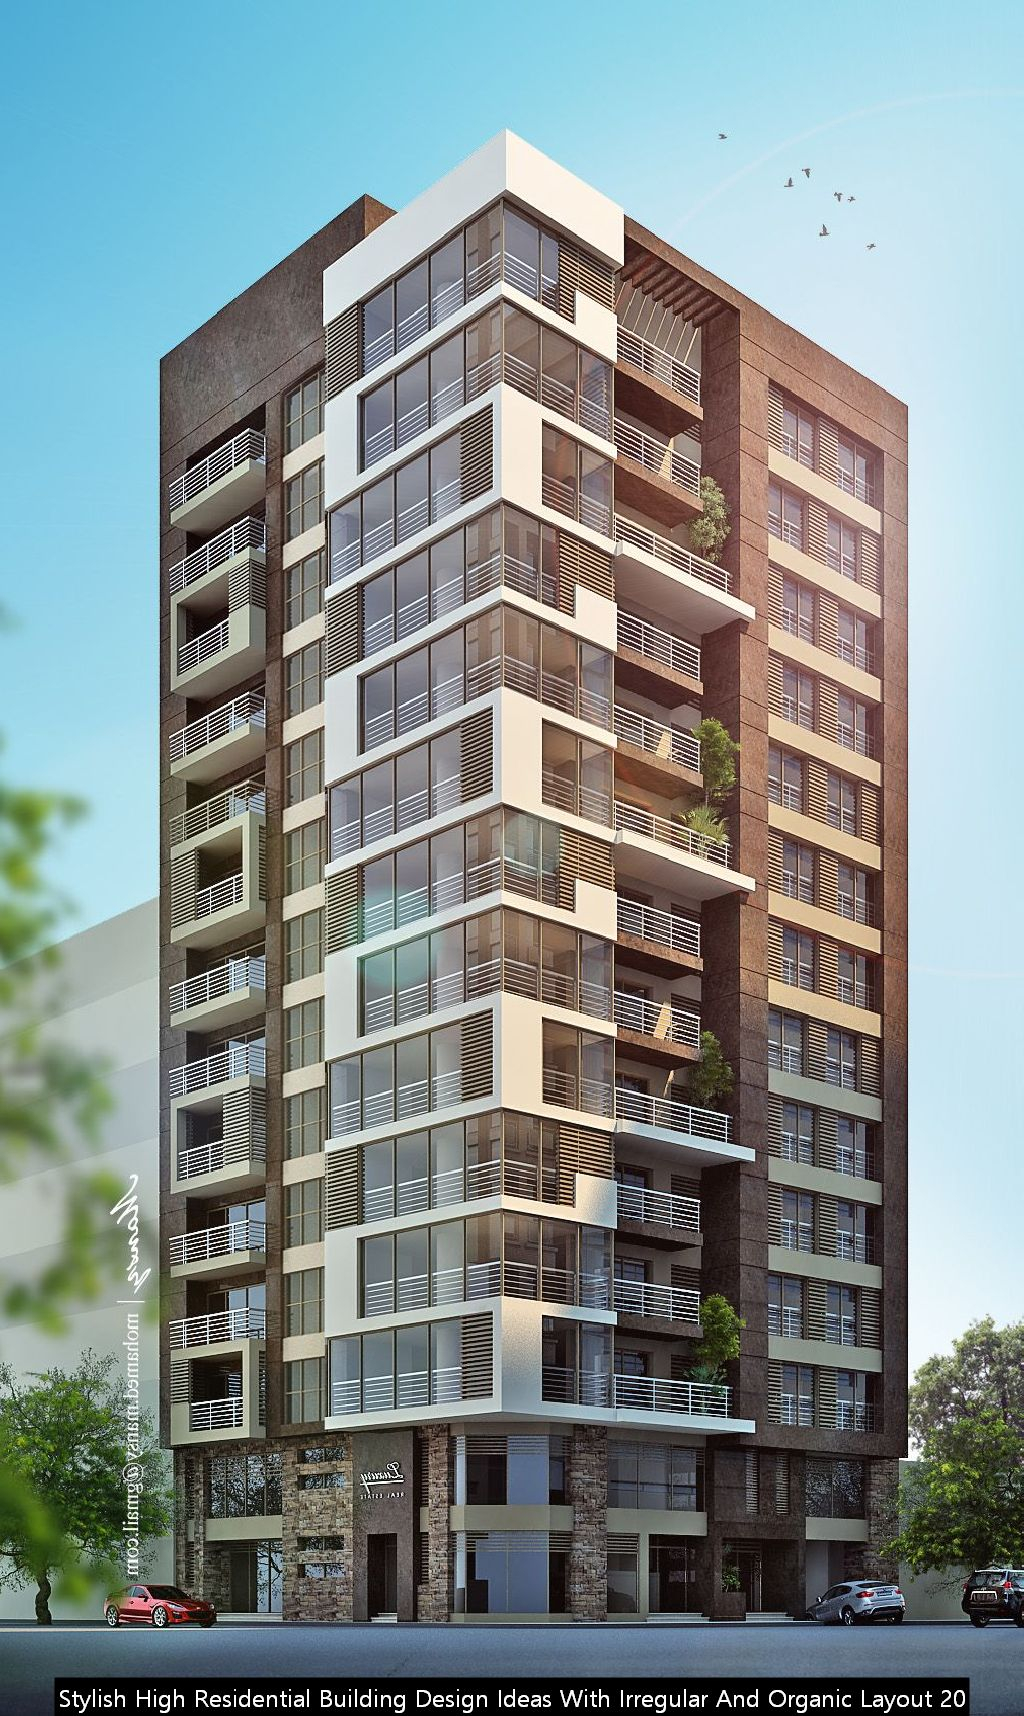 Stylish High Residential Building Design Ideas With Irregular And Organic Layout 20